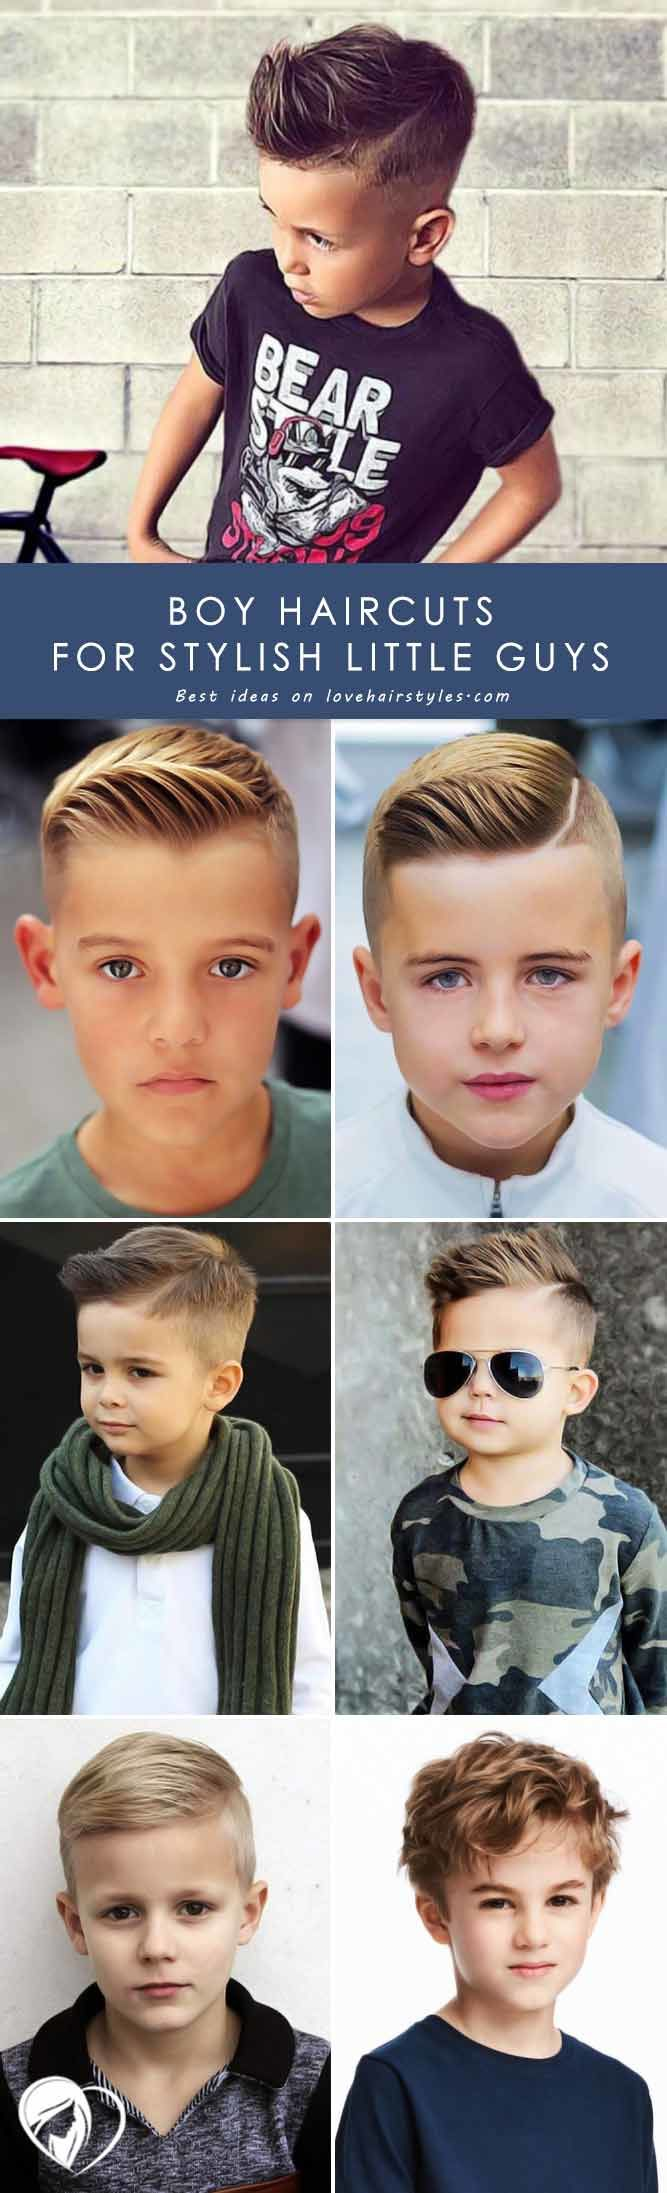 Keep Up With Fashion With These Stylish Boy Haircuts